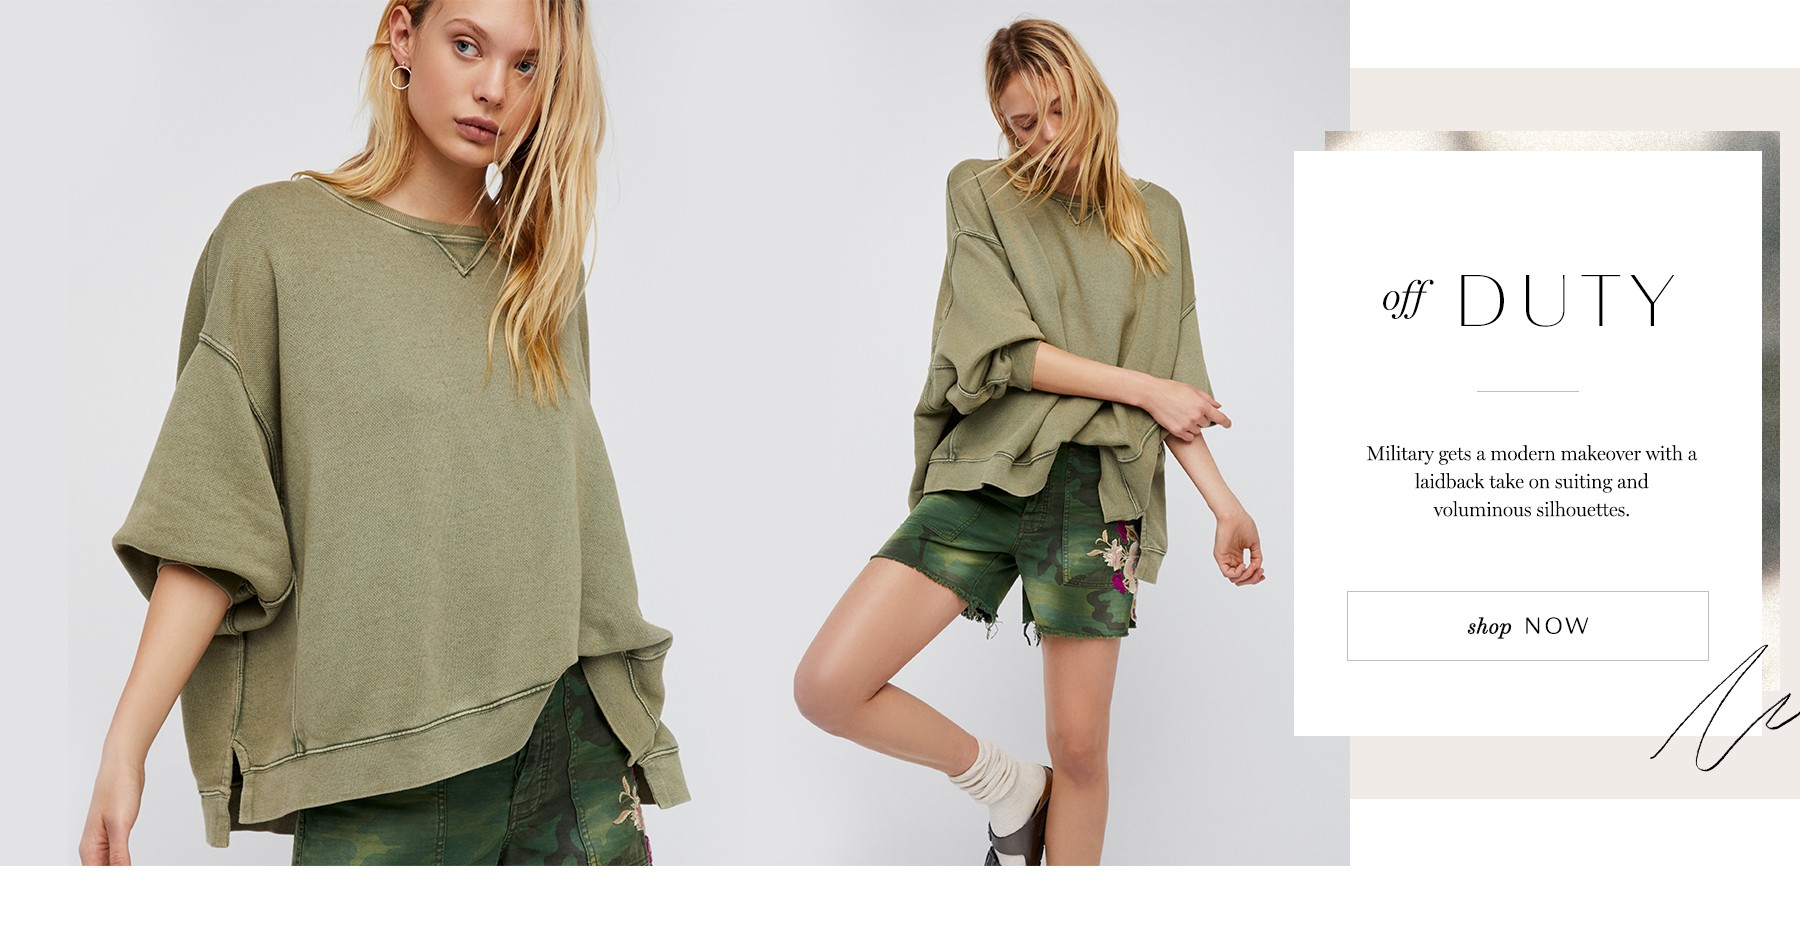 Shop the Off Duty Trend at Free People